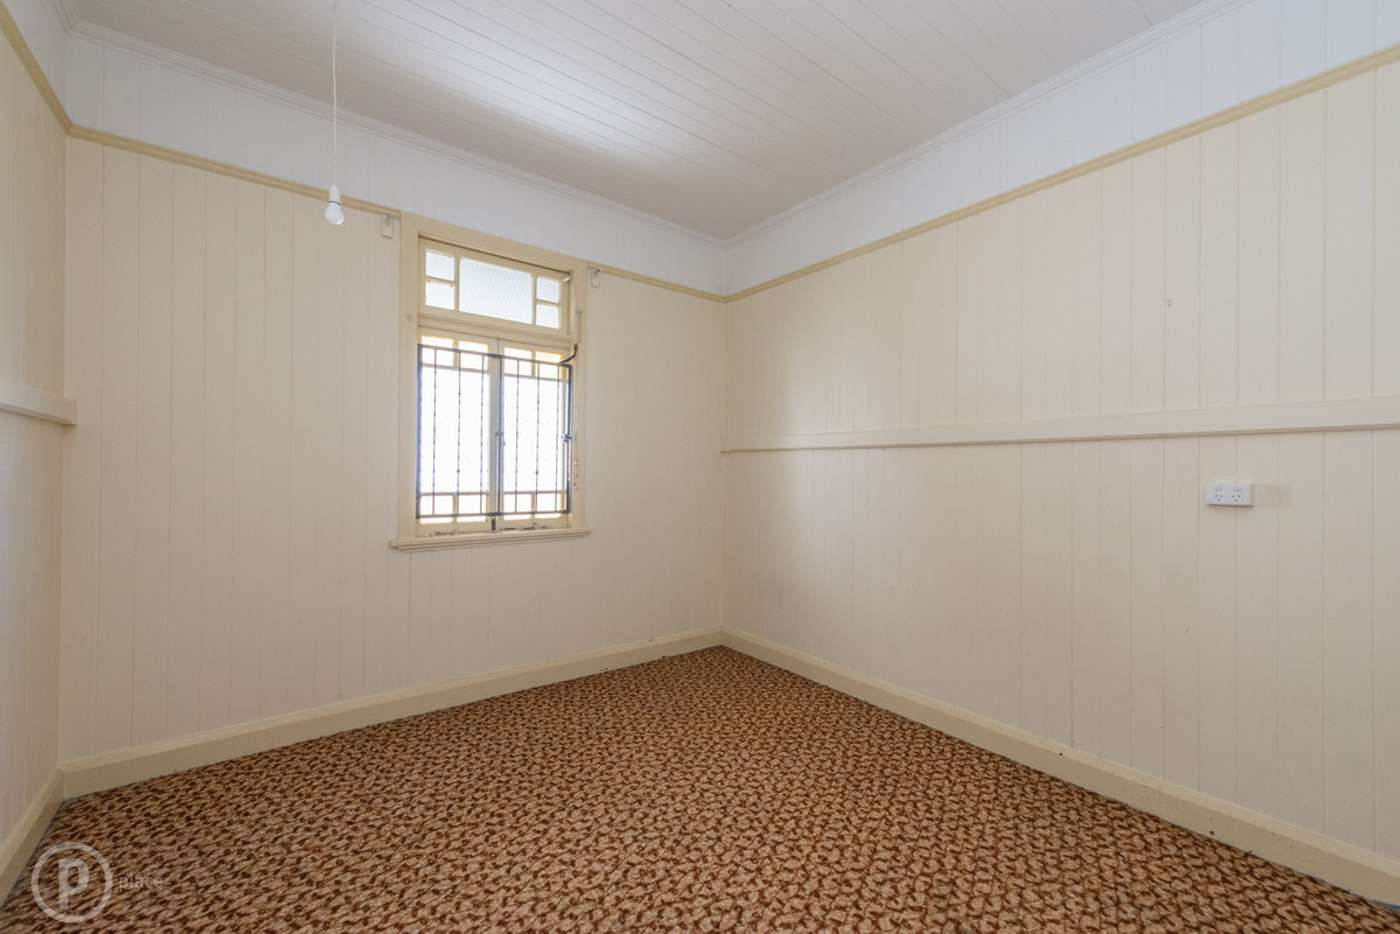 Seventh view of Homely house listing, 34 Bromley Street, Kangaroo Point QLD 4169